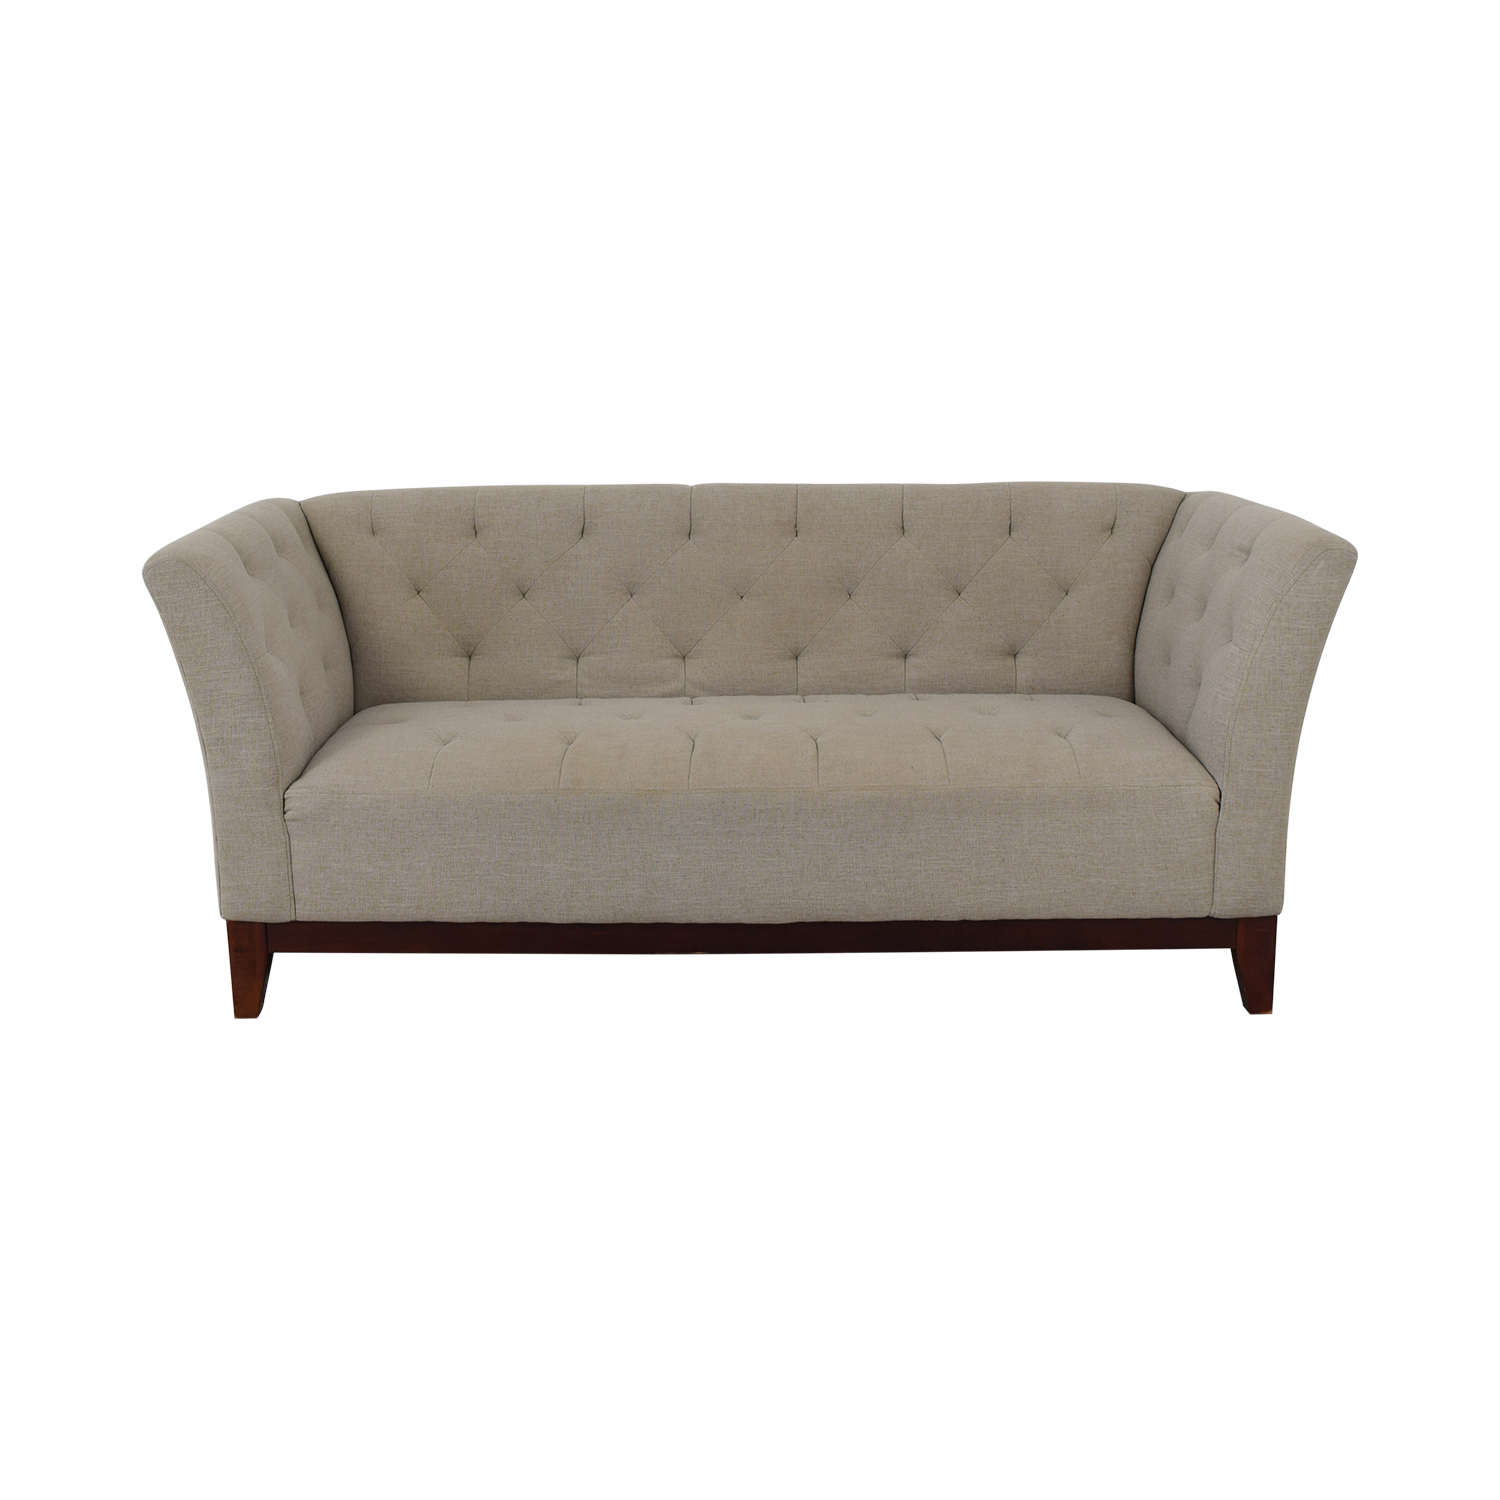 Macy's Macy's Tory Apartment Size Sofa coupon